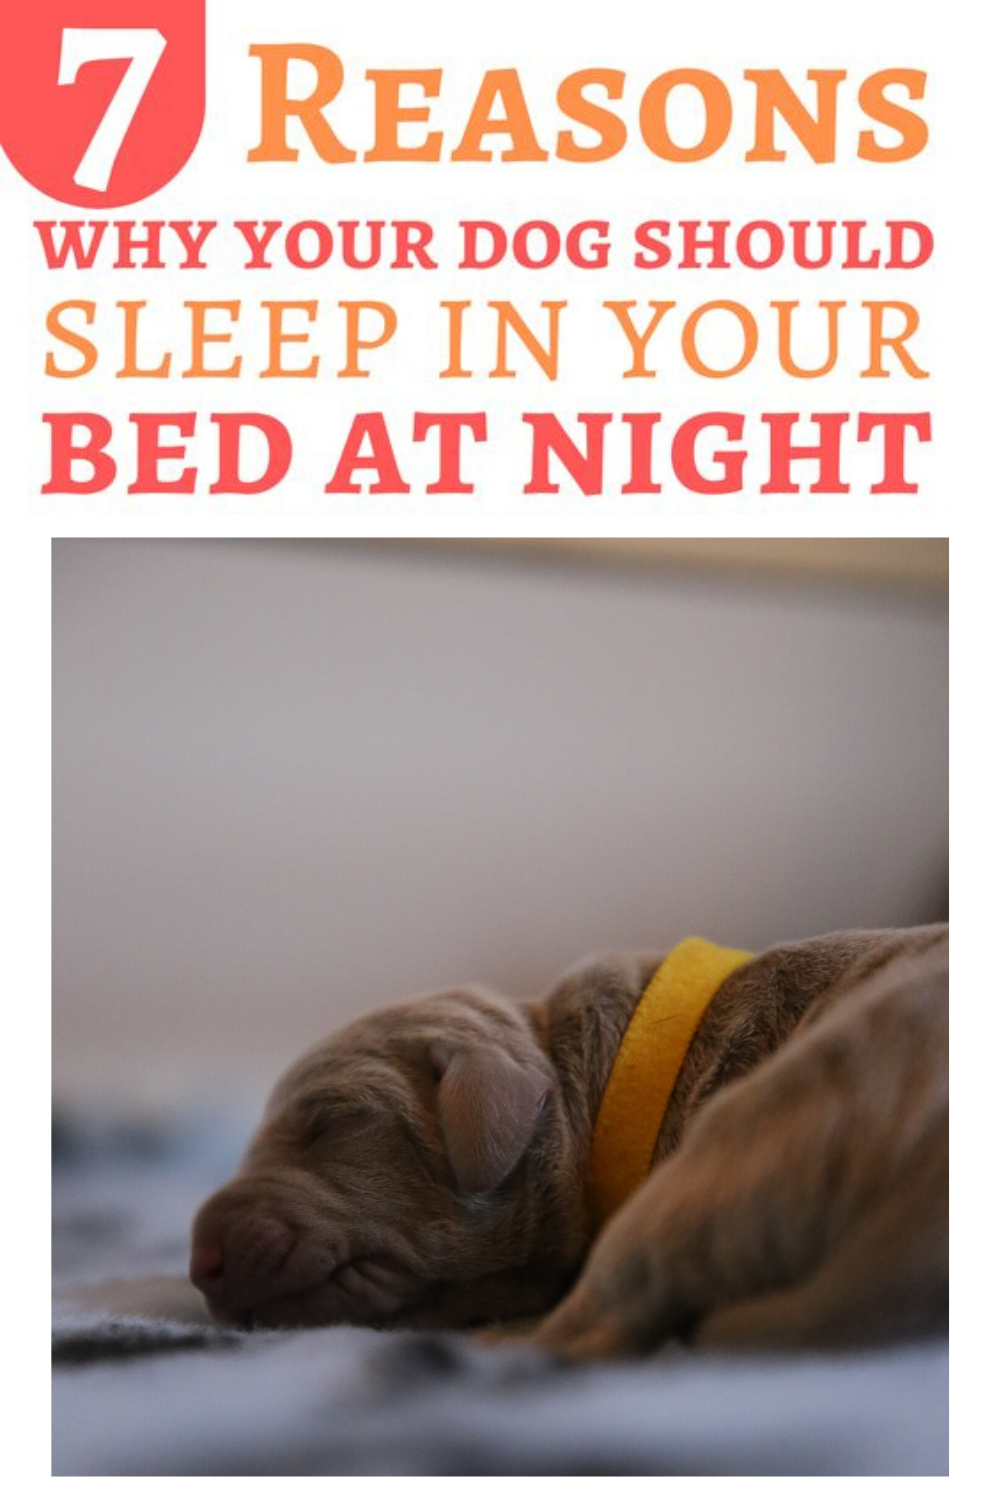 7 Amazing Reasons Why Your Dog Should Sleep In Your Bed At Night Dog Mom Humor Dog Mom Gifts Anxious Dog